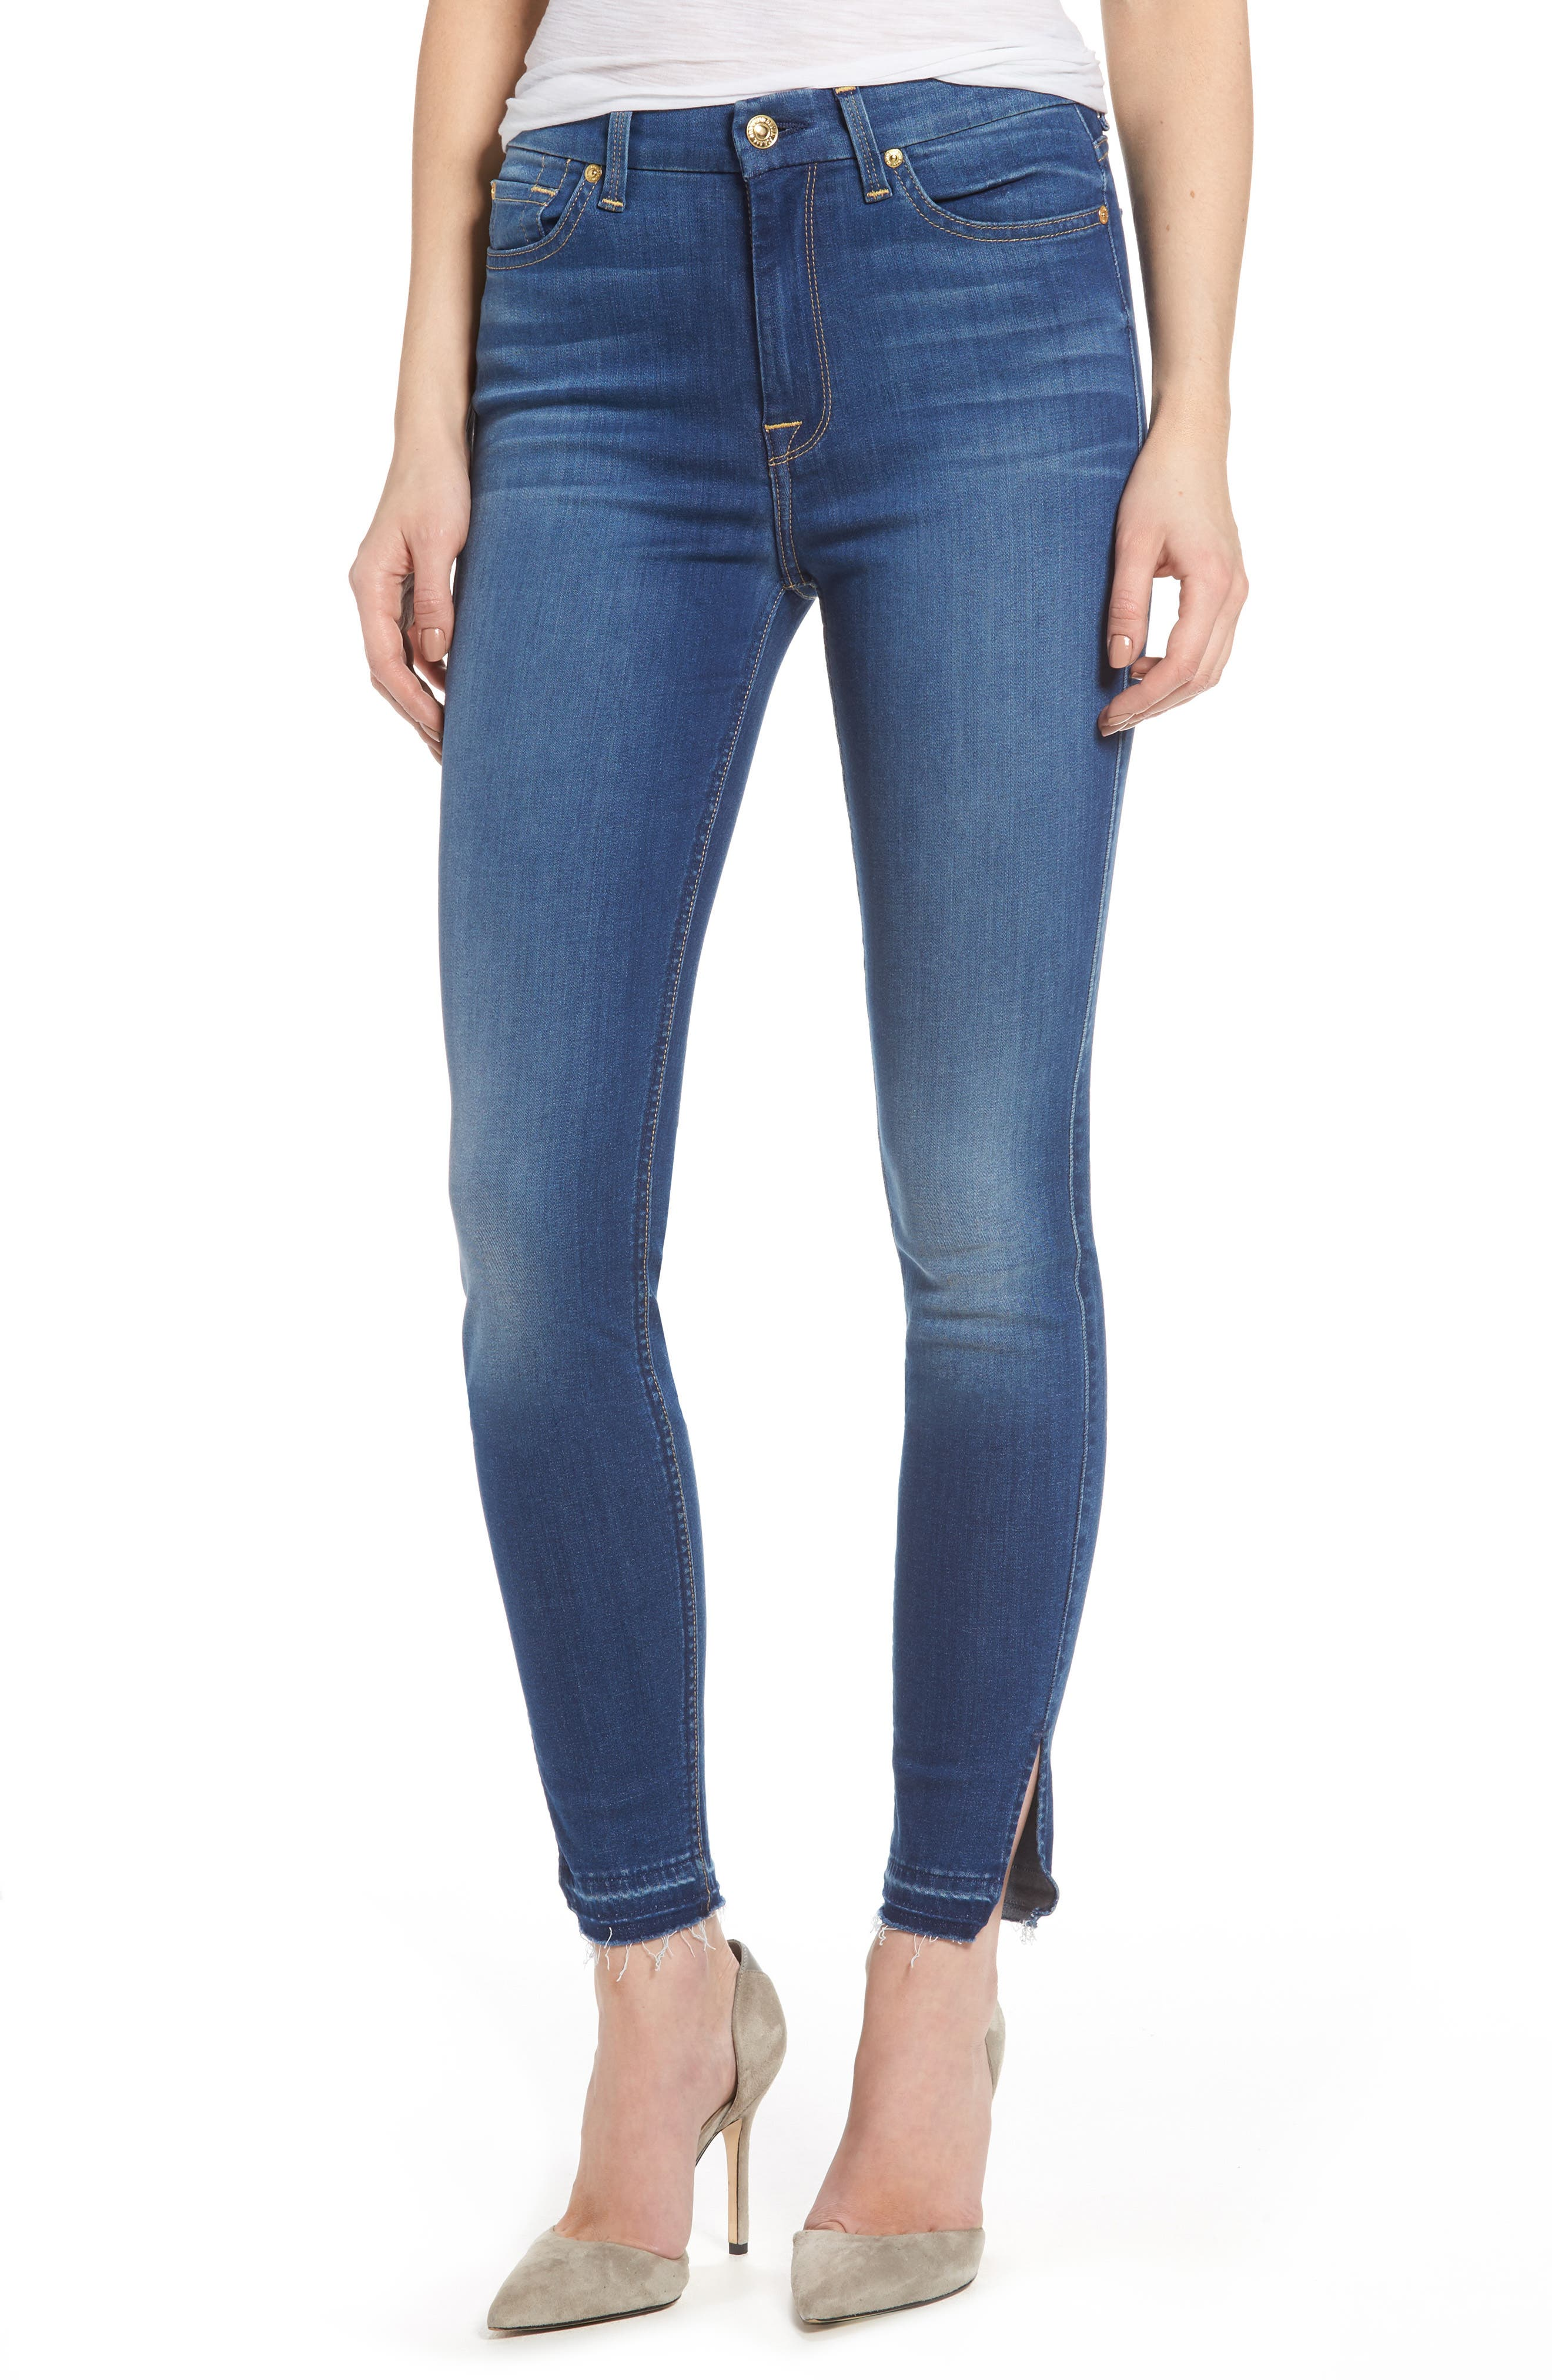 b(air) High Waist Split Hem Skinny Jeans,                             Main thumbnail 1, color,                             400